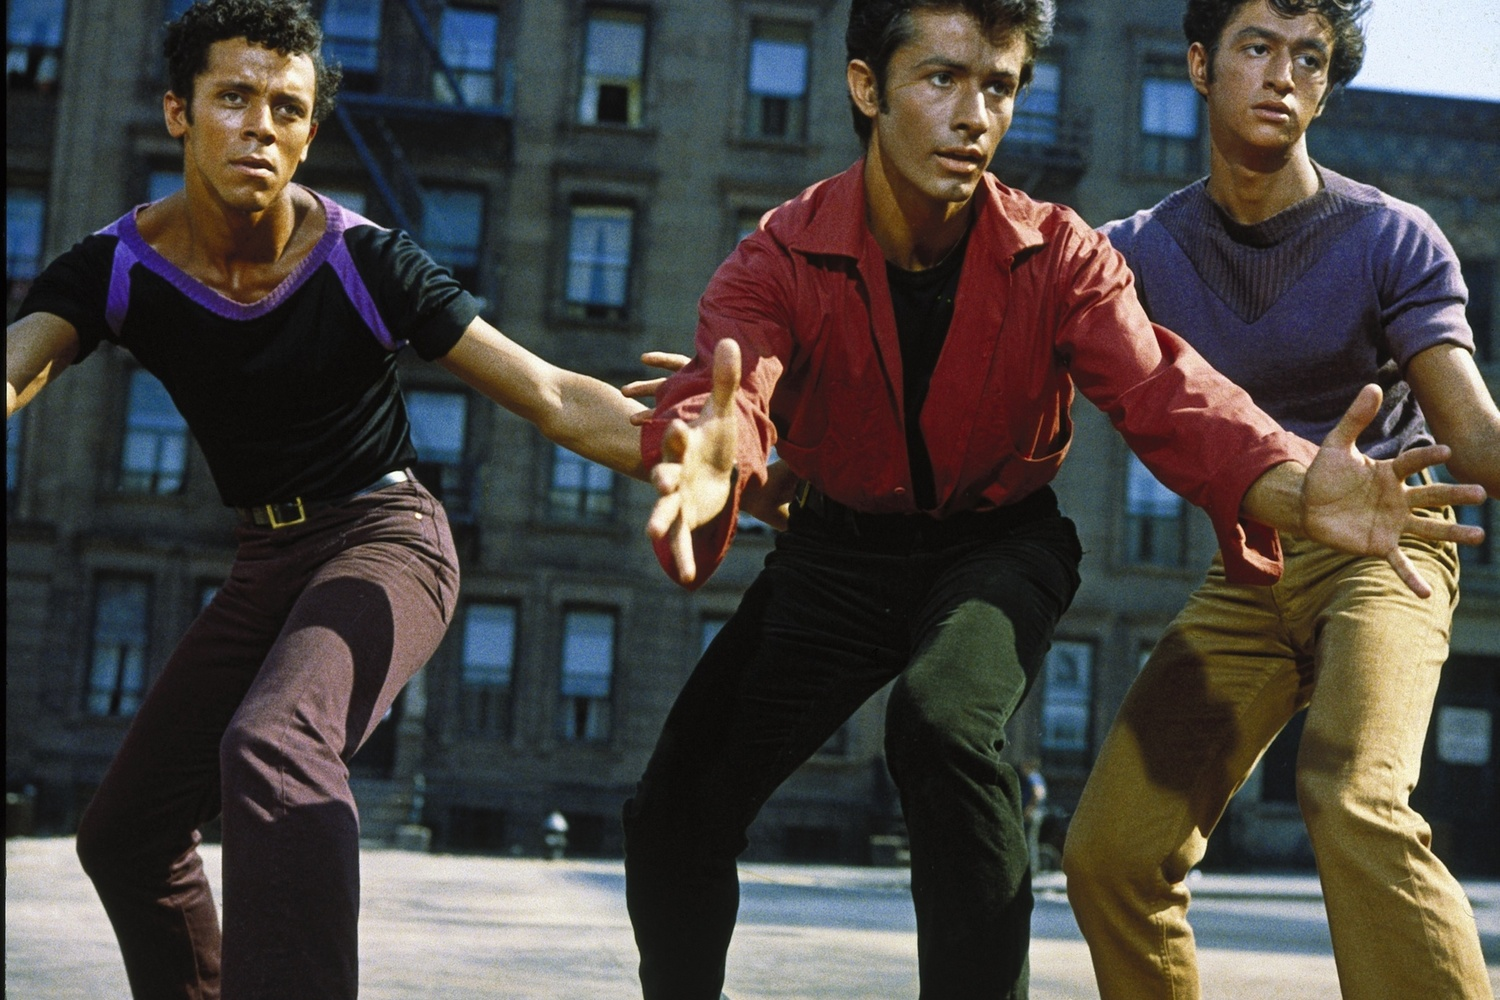 West Side Story. 1961. USA. Directed by Robert Wise and Jerome Robbins. In George Chakiris: A Life in Film. Courtesy MGM Studios/Park Circus